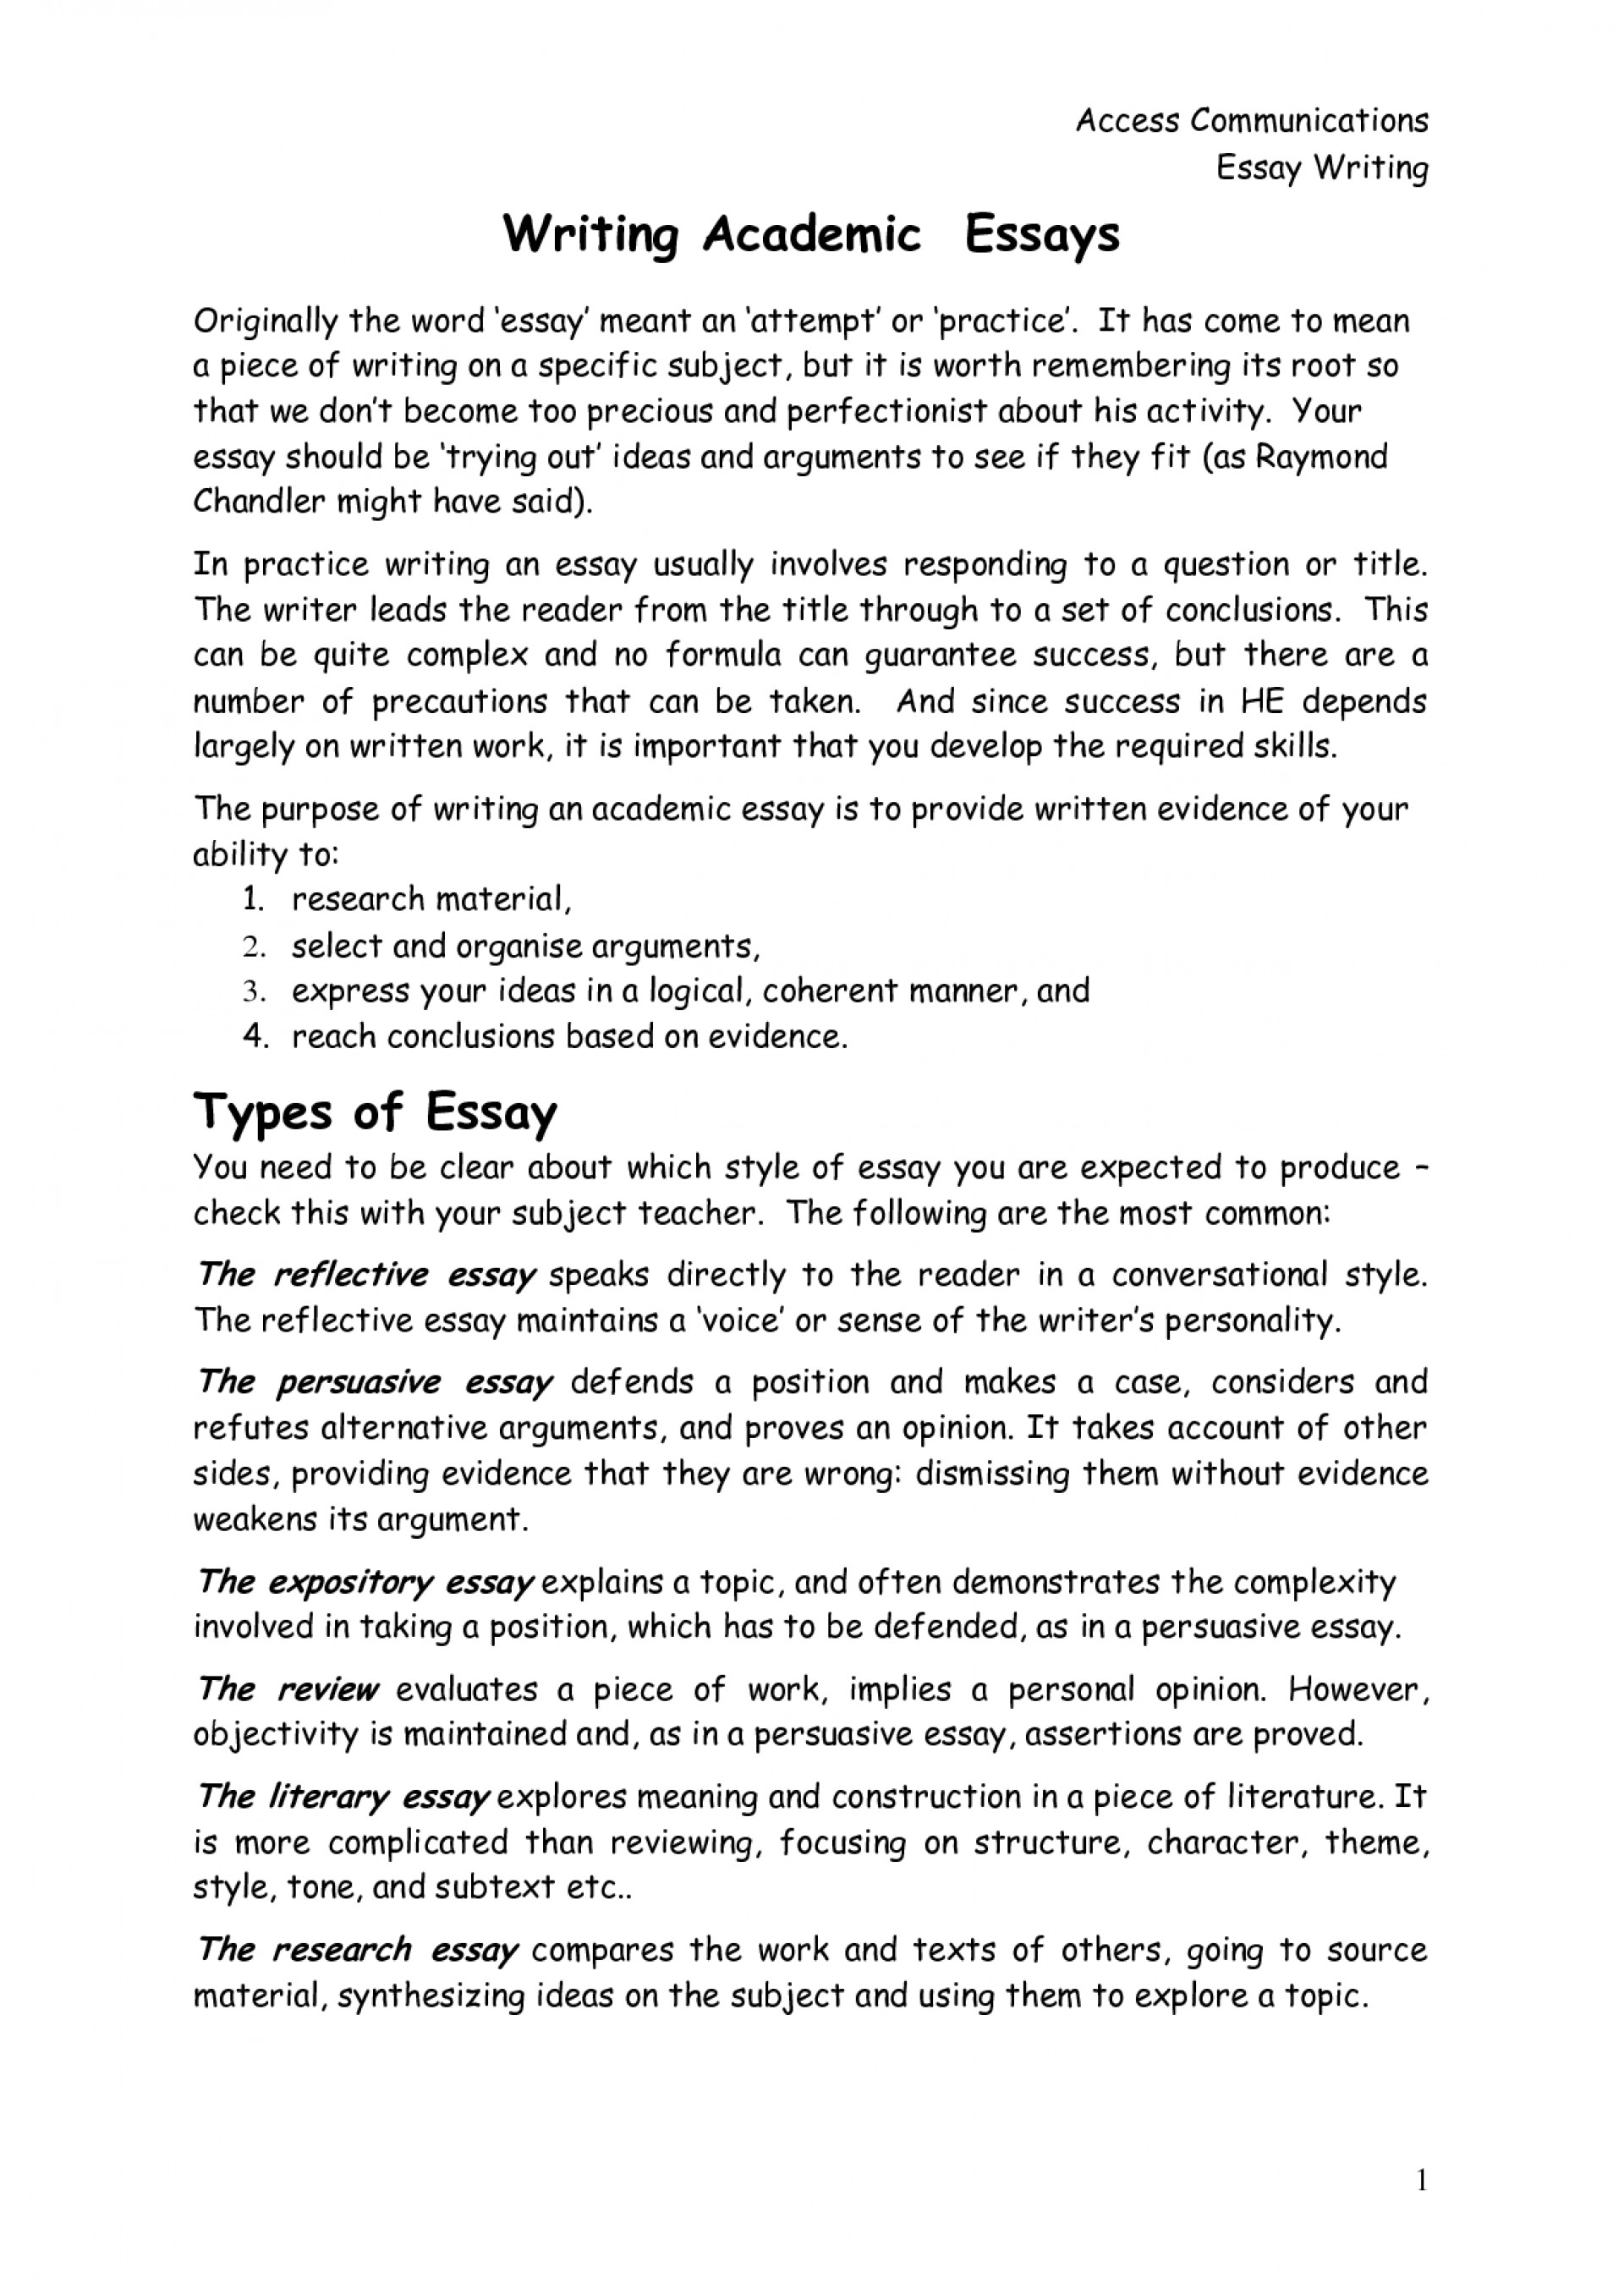 017 Essay For Me Example Phenomenal Titles Social Media Medical Assistant Medicine 1920